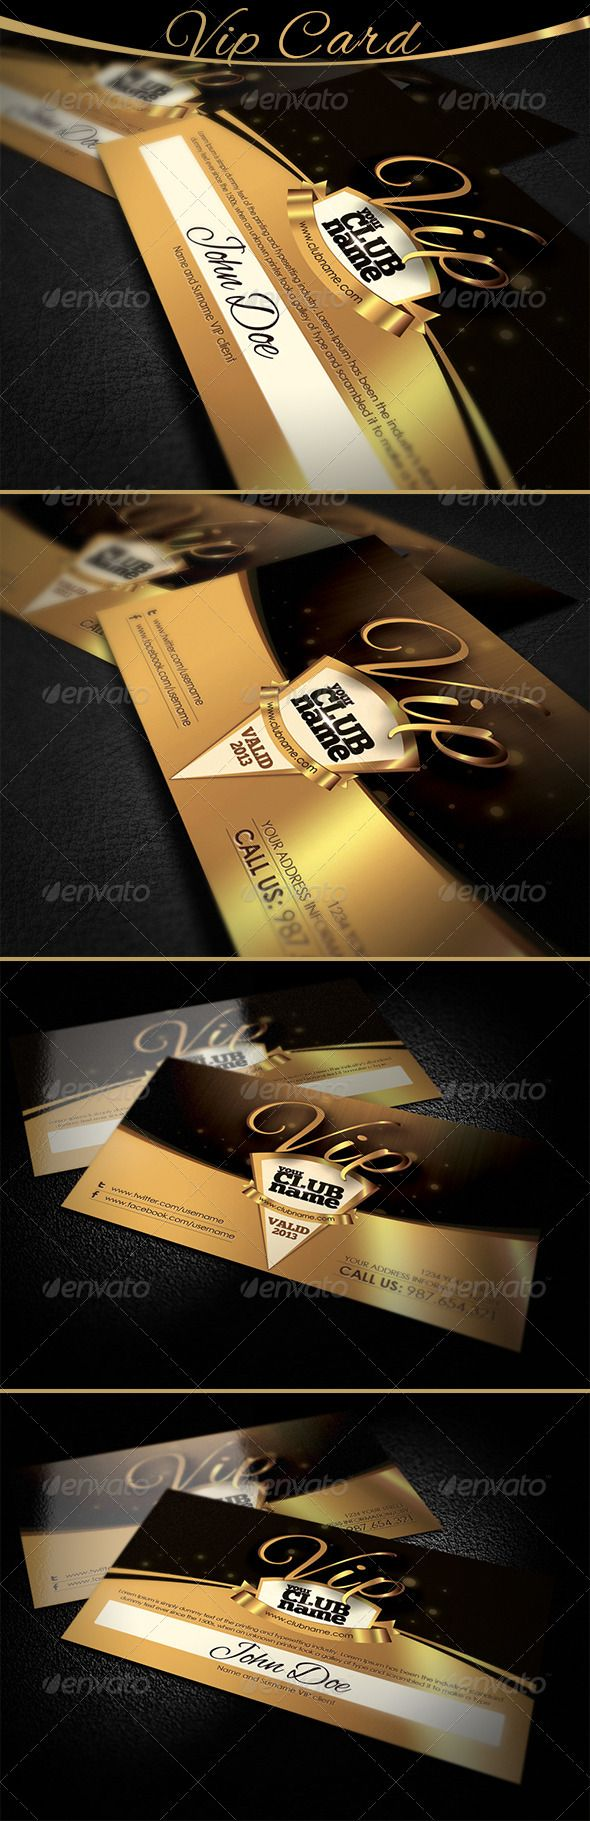 78 best business cards images on pinterest business cards 78 best business cards images on pinterest business cards appetizers and corona magicingreecefo Gallery